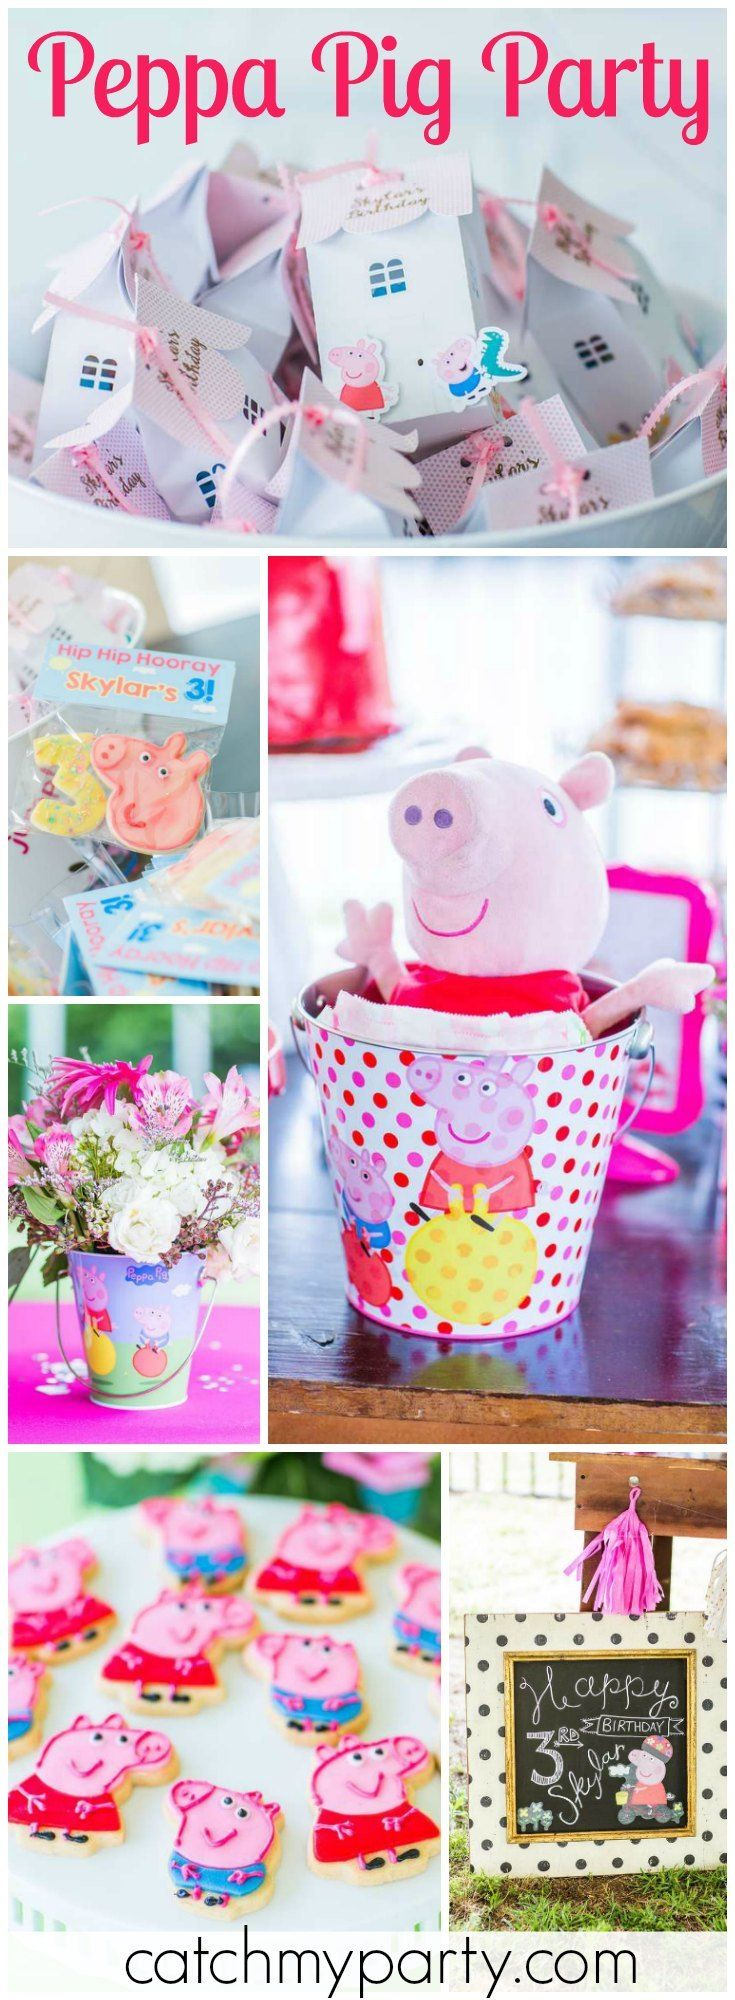 What a fun pink Peppa Pig girl birthday party! See more party ideas at Catchmyparty.com!